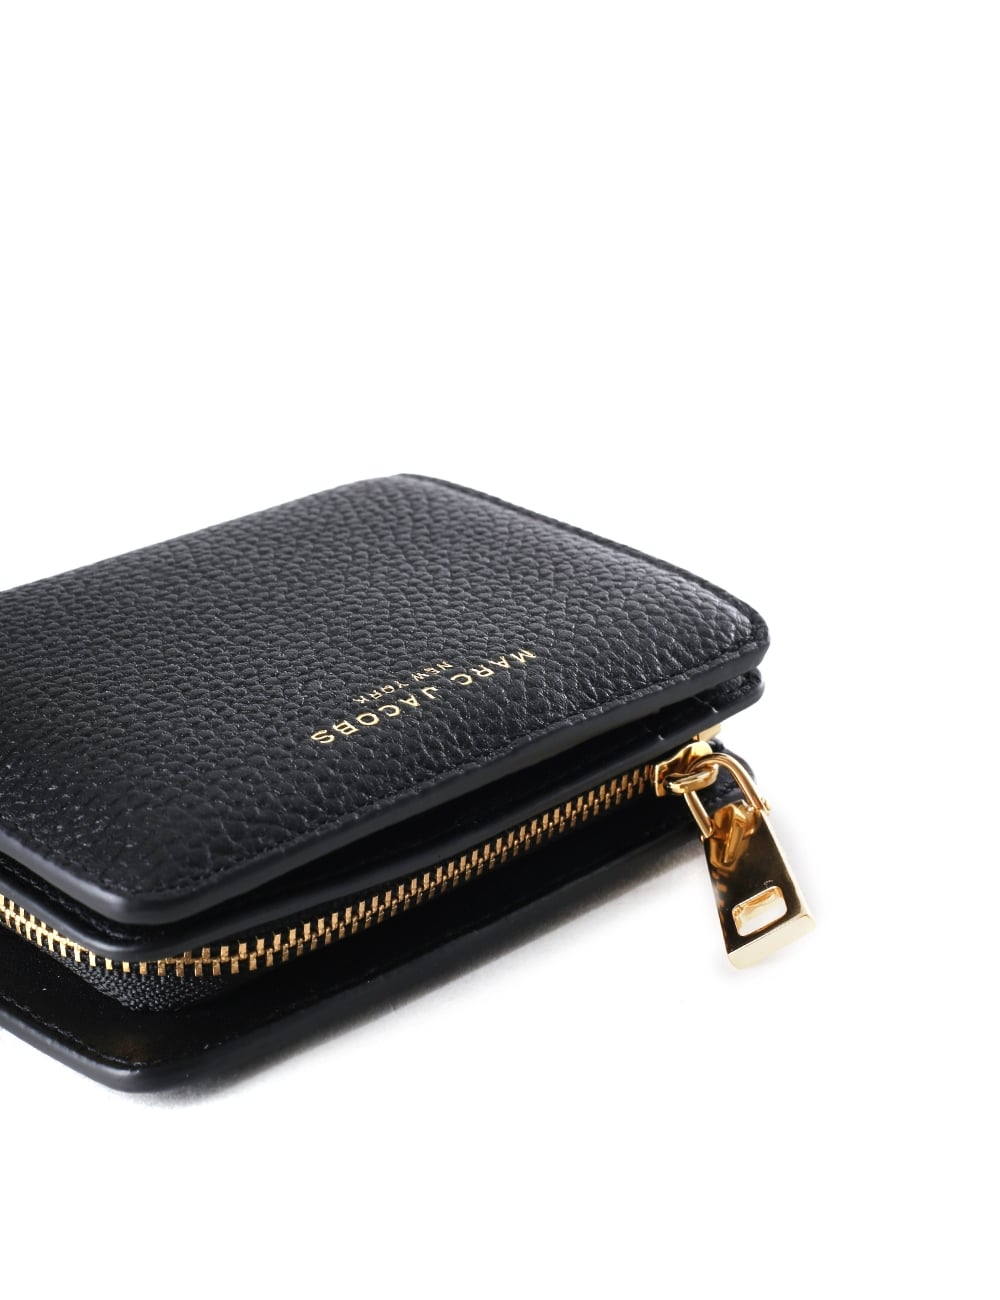 6e921f2226 Marc Jacobs Women's Gotham Mini Compact Wallet